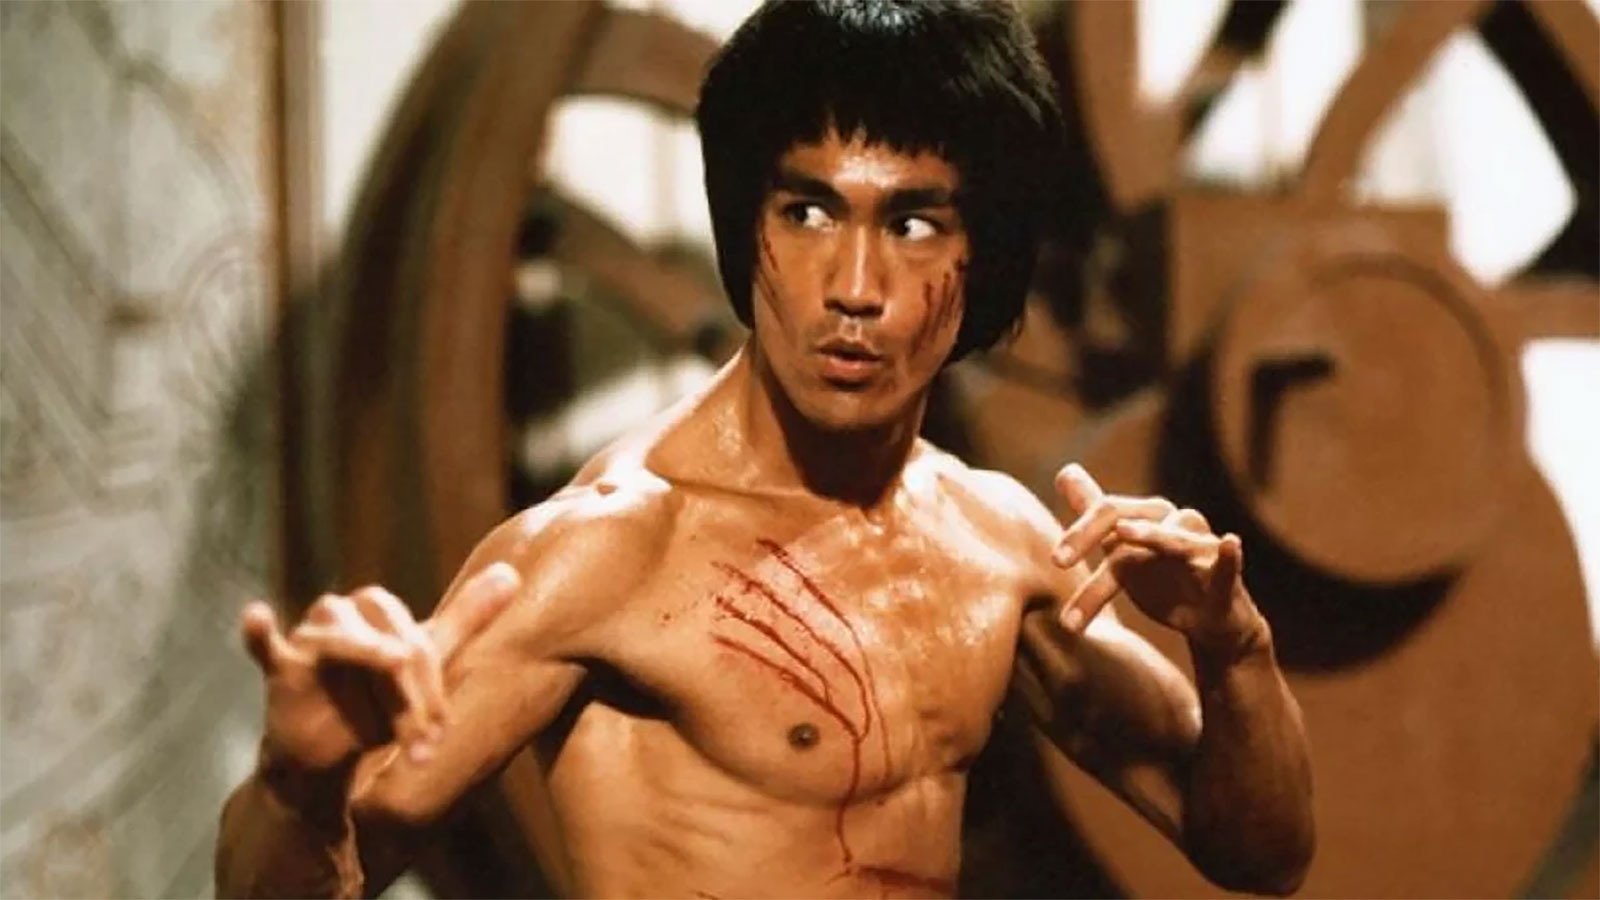 3 Lessons From Bruce Lee On Getting Through Hard Times